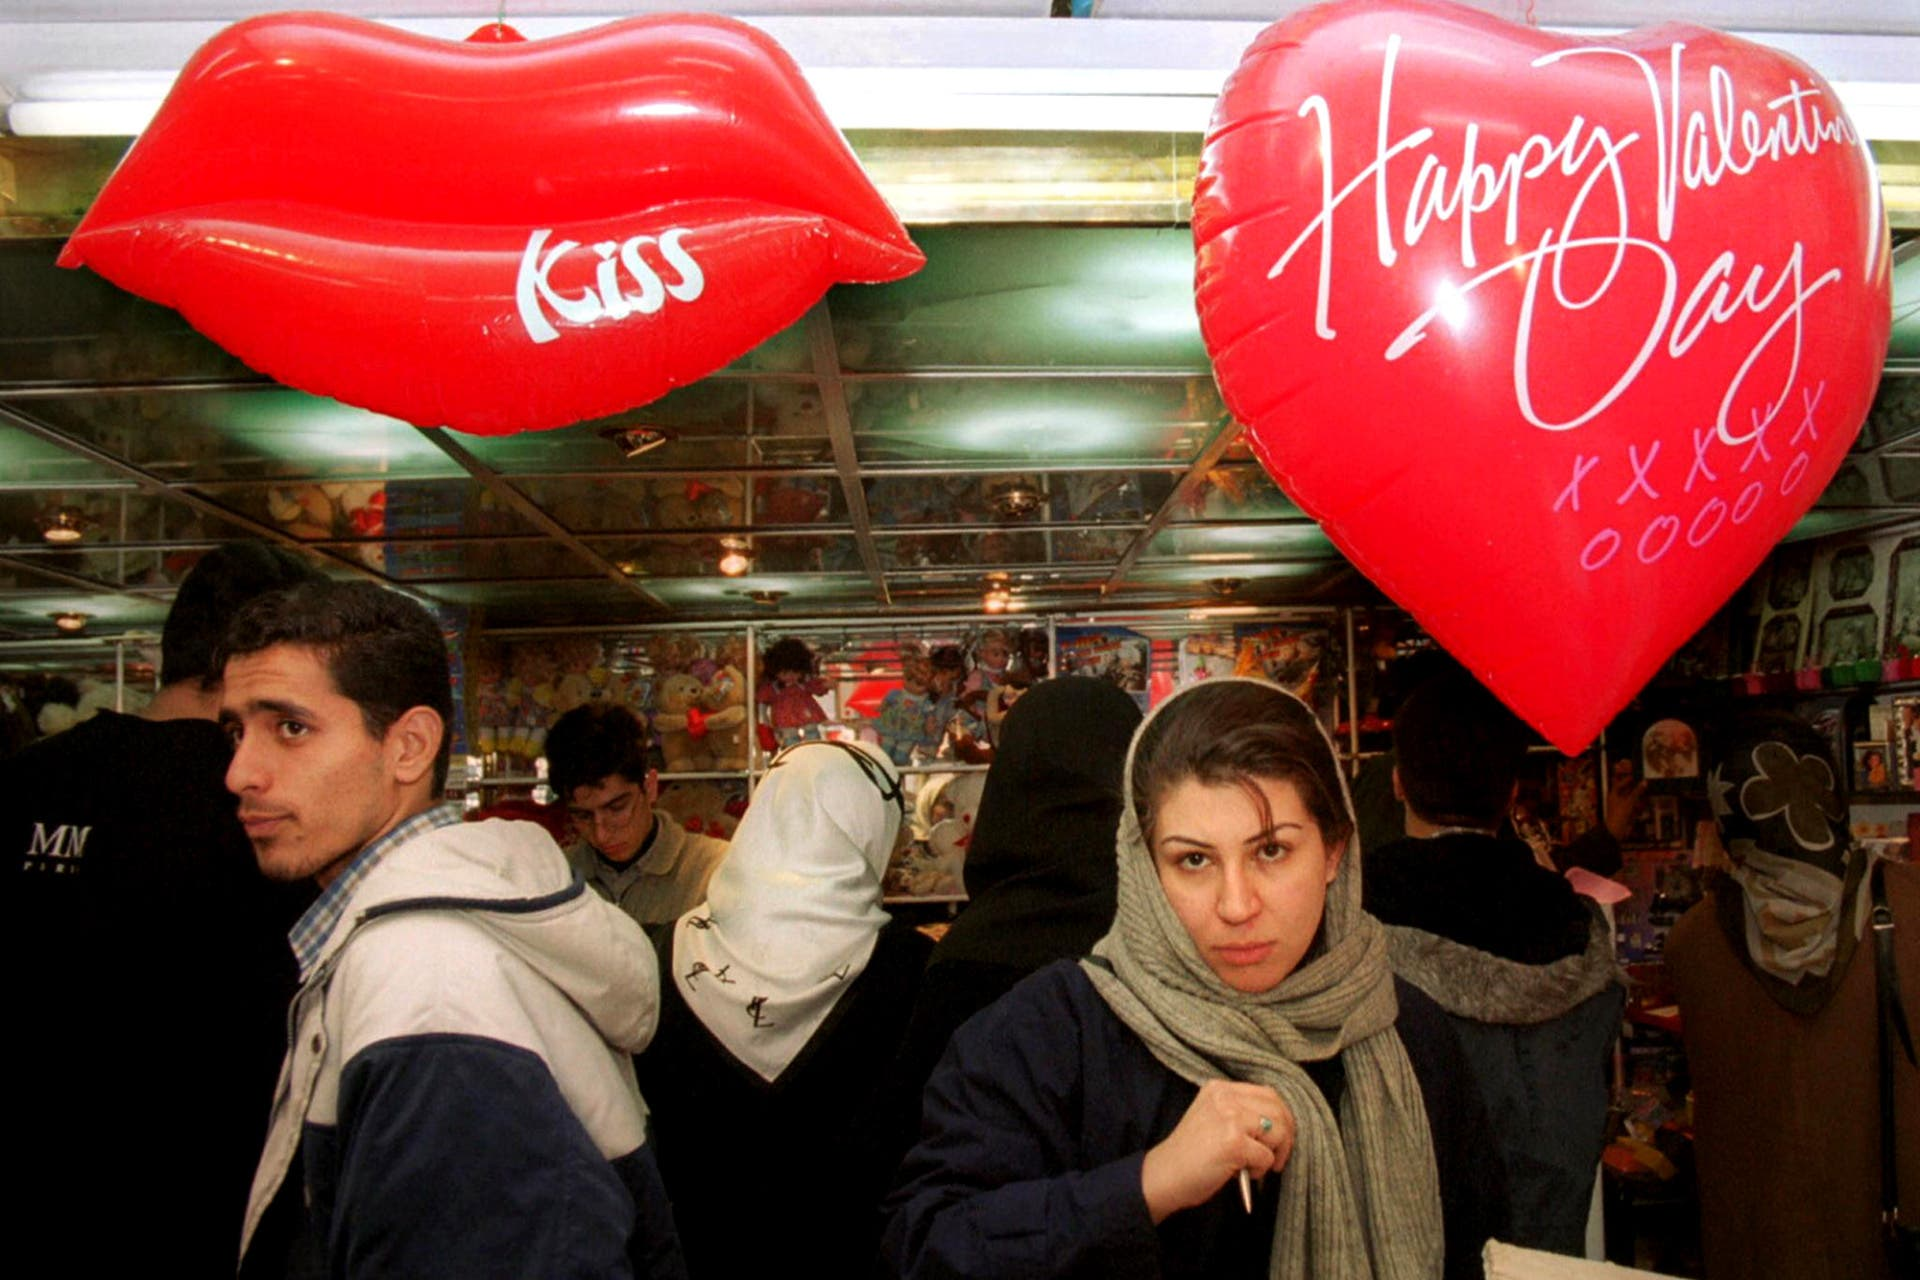 Iranians shop for Valentine's Day gifts at a shop in Tehran in 2001. (AFP)